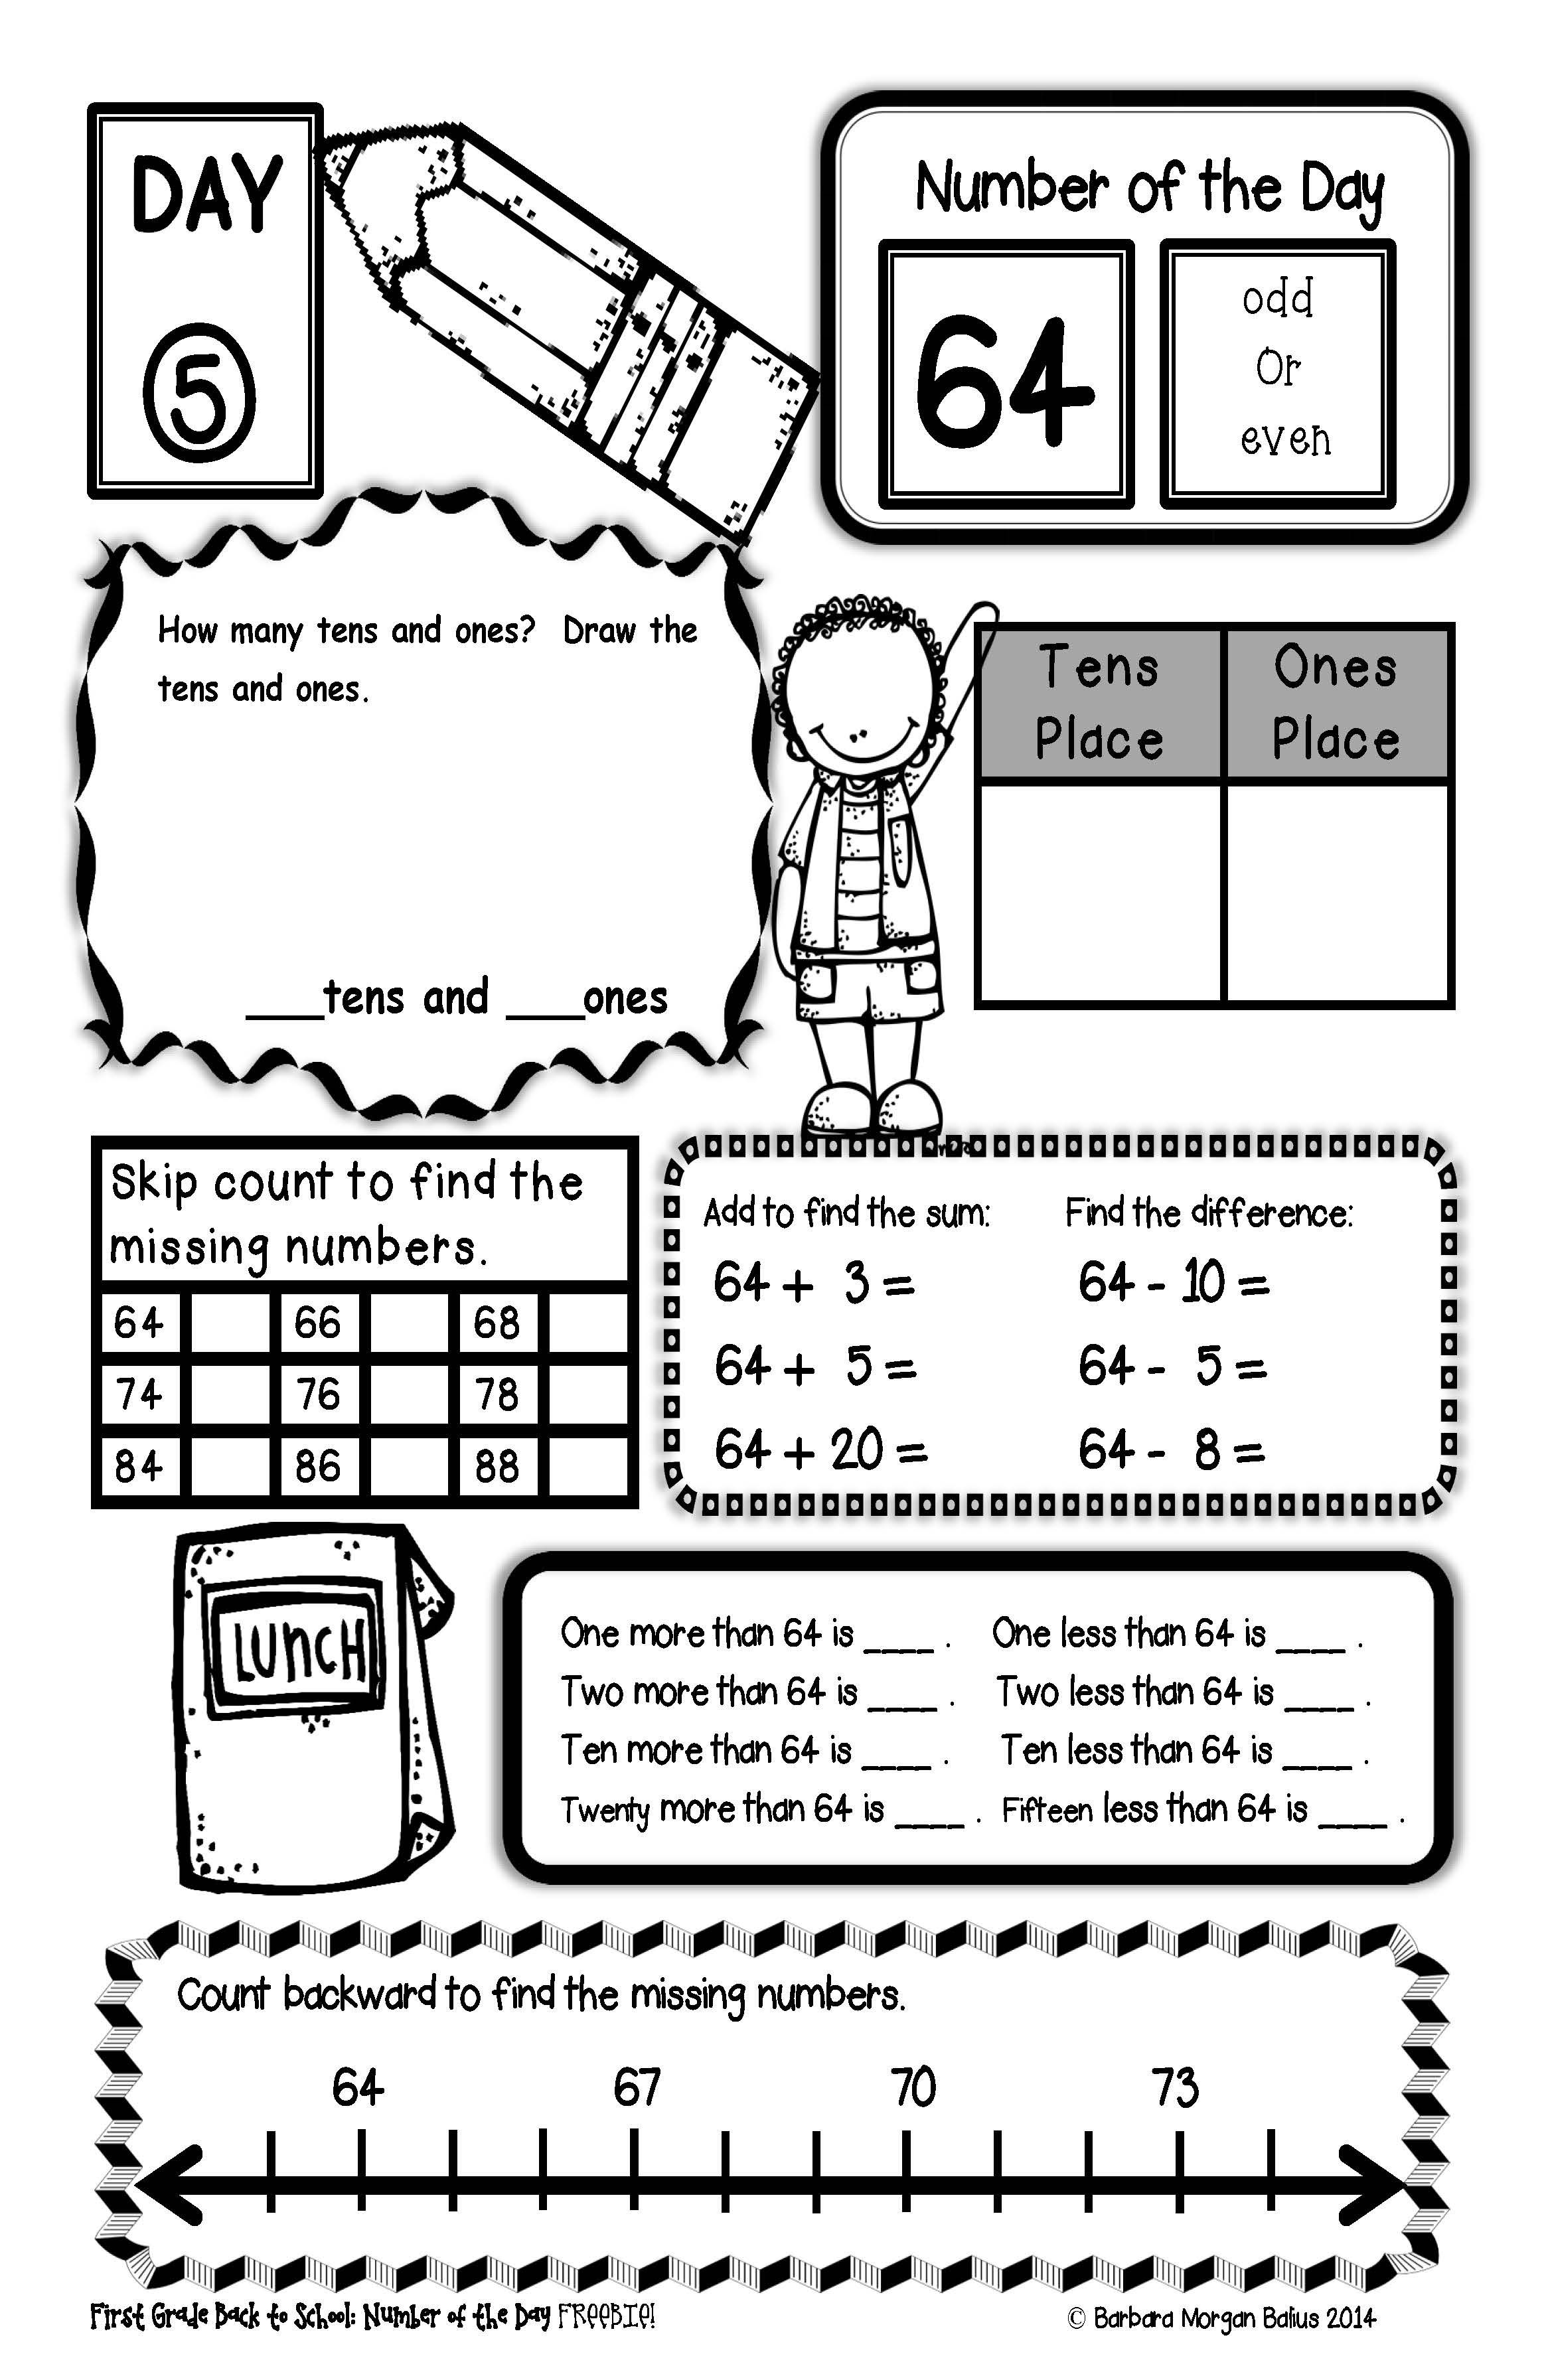 School Worksheets For 2nd Grade : Second grade back to school number of the day freebie all